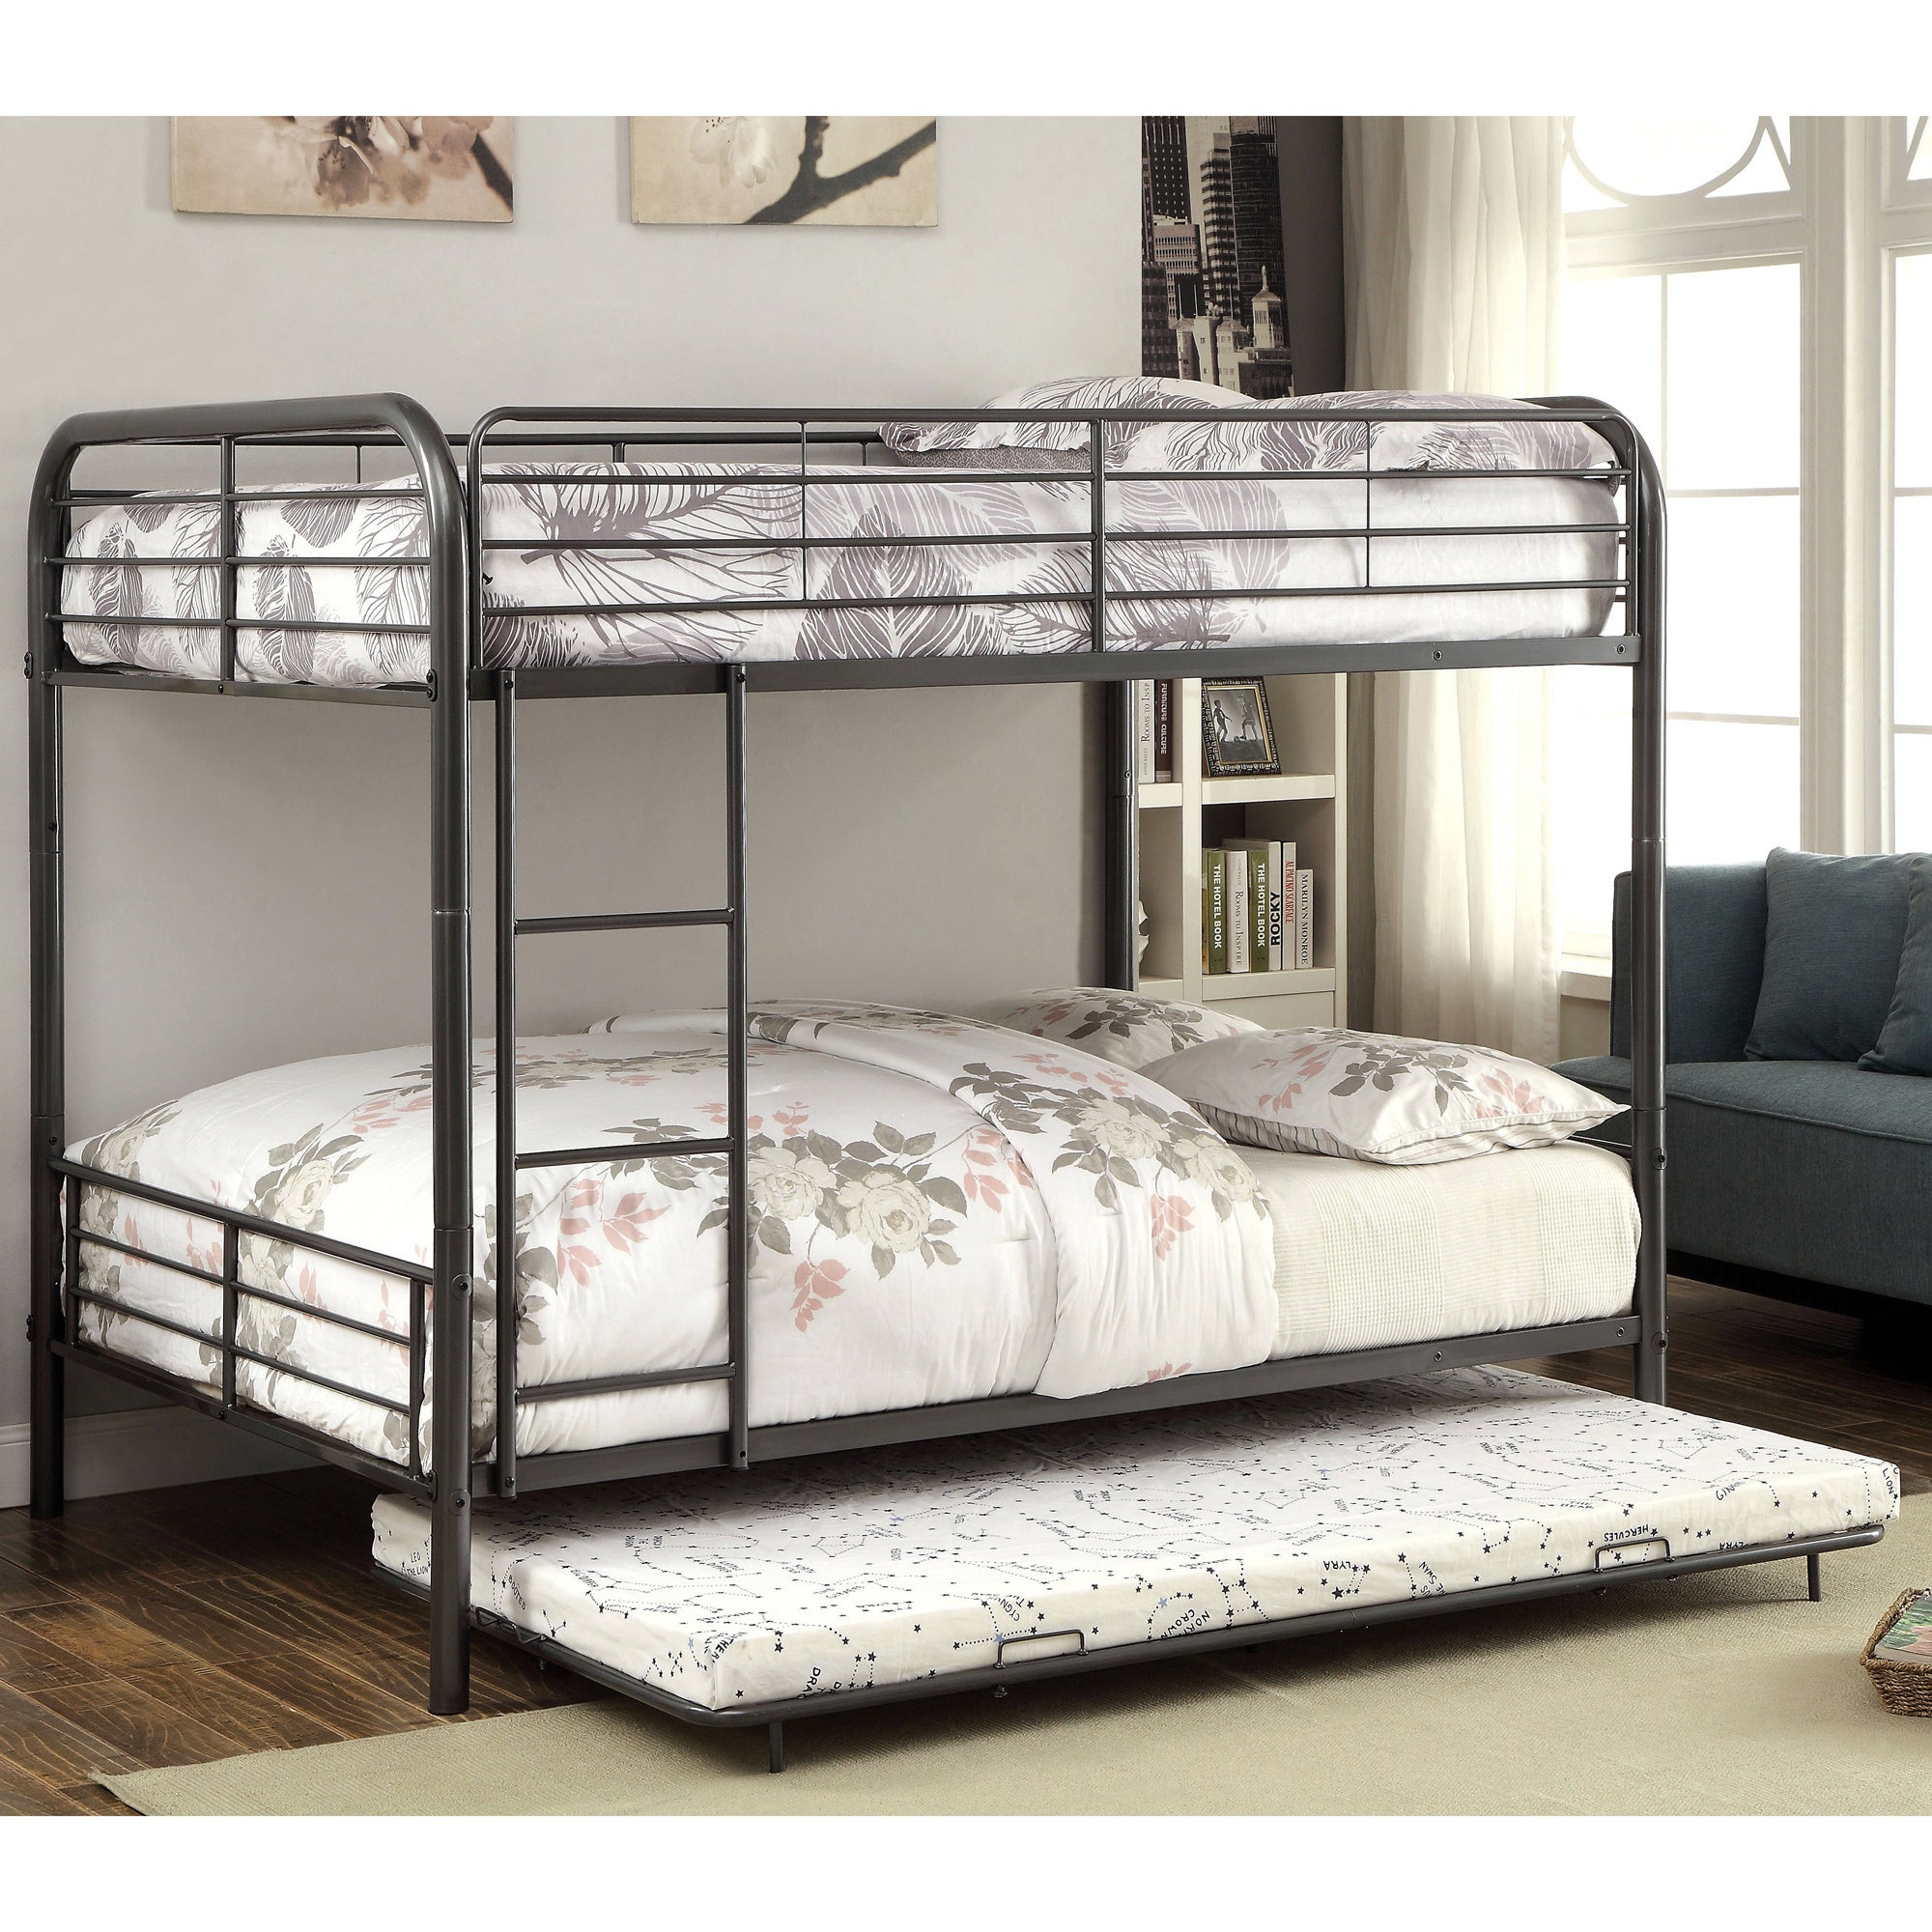 Linden Ii Modern Full Over 2 Piece Bunk Bed Set By Foa